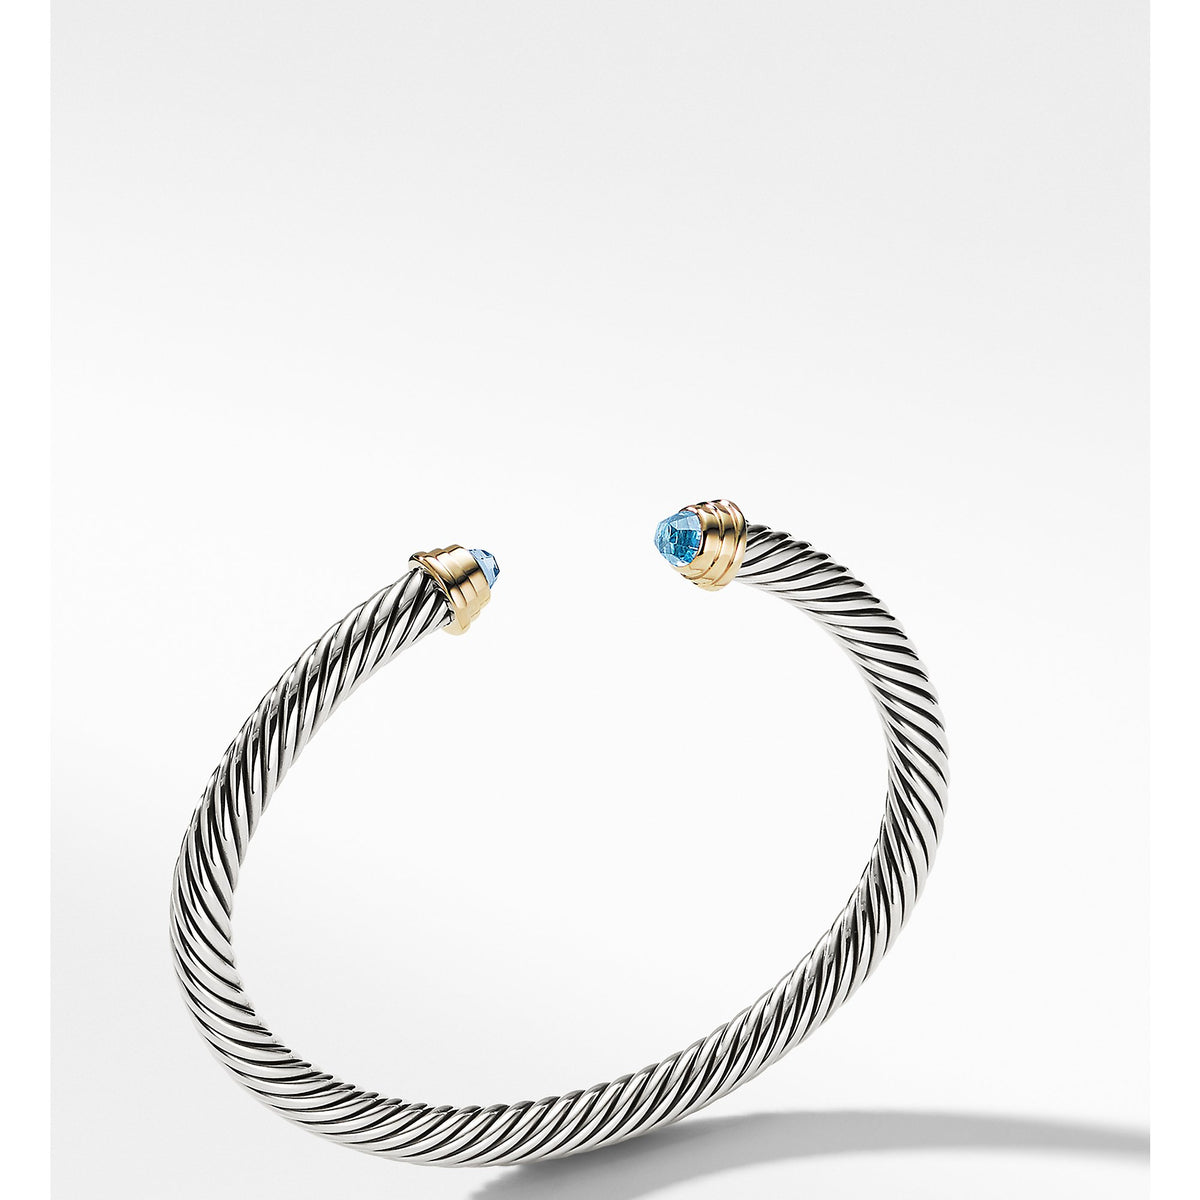 Cable Kids Birthstone Bracelet with Blue Topaz and 14K Gold, 4mm